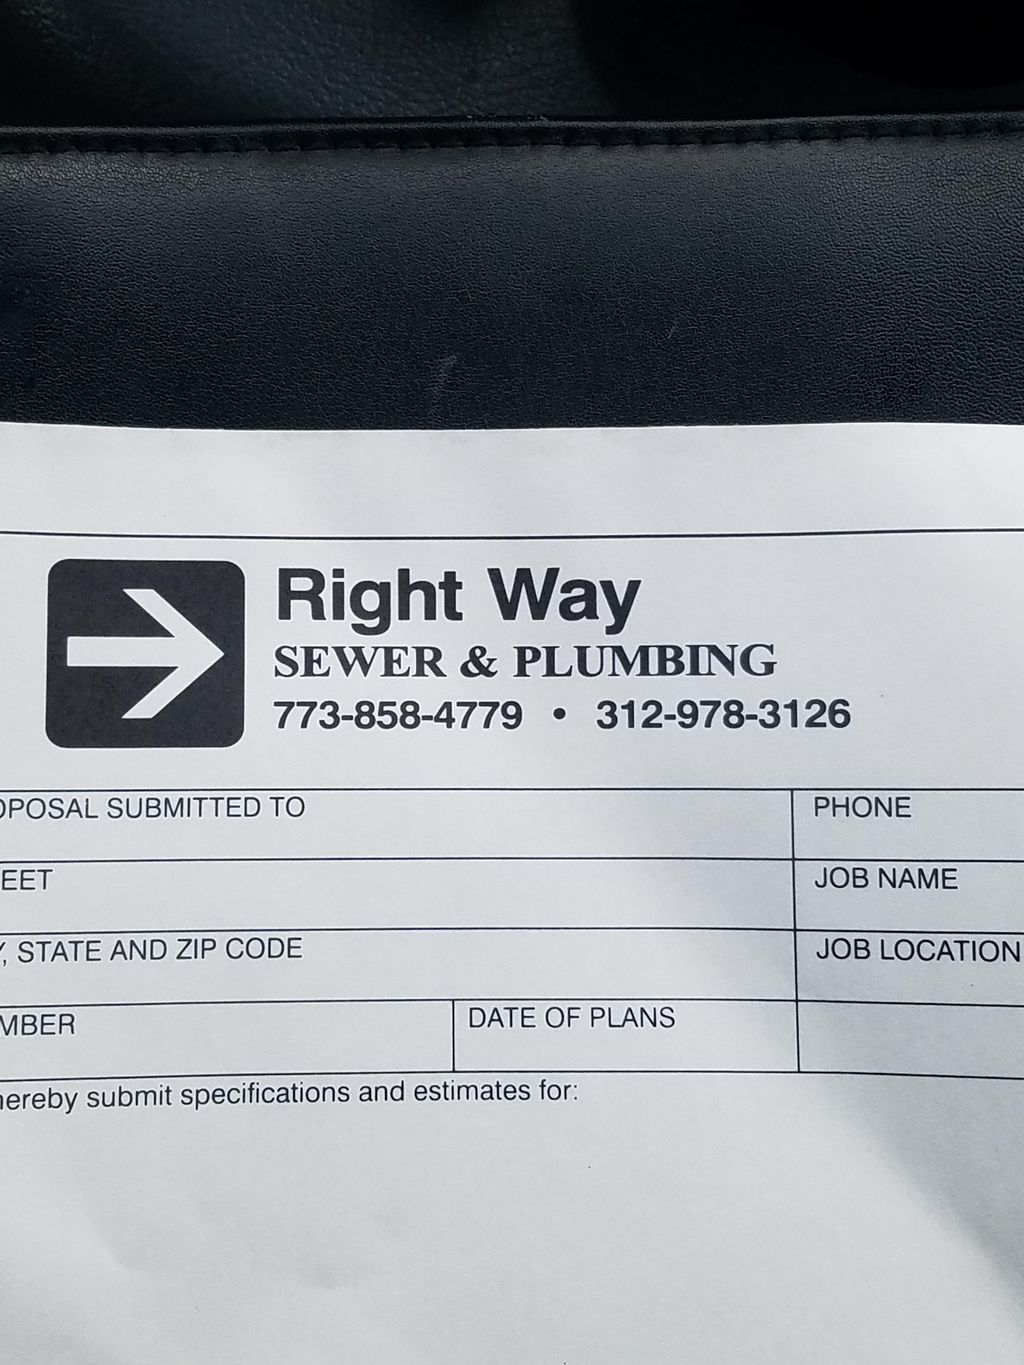 Right way sewer and plumbing LLC